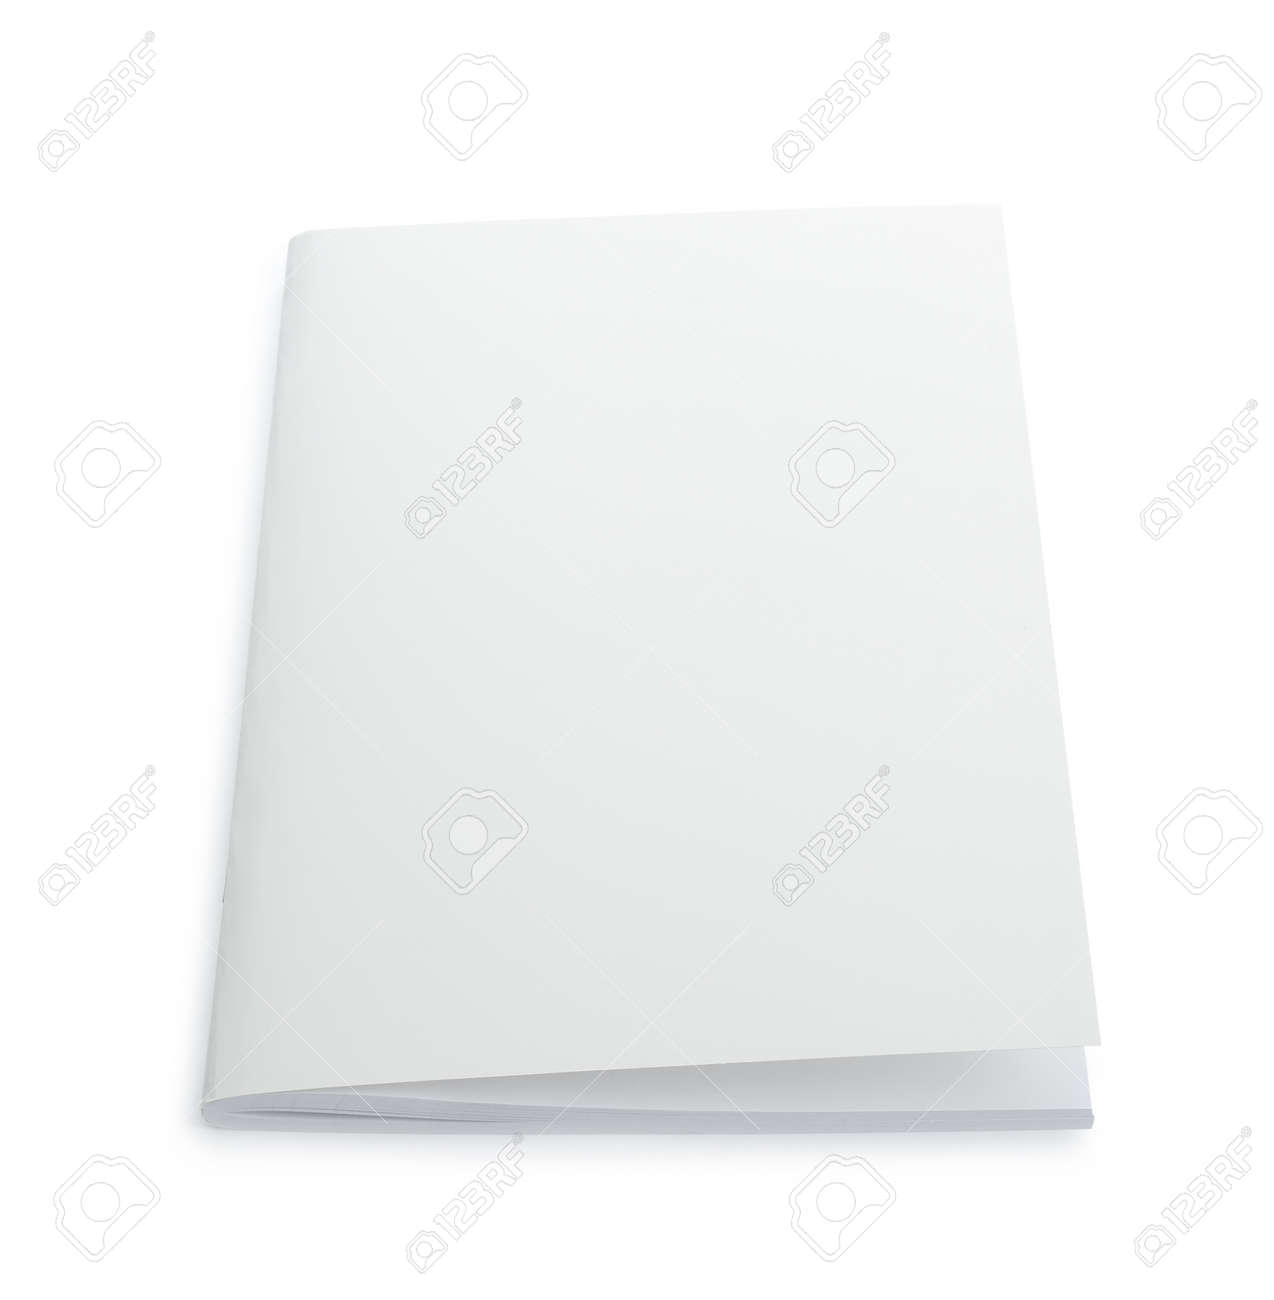 Blank paper brochure isolated on white. Mockup for design - 169674697